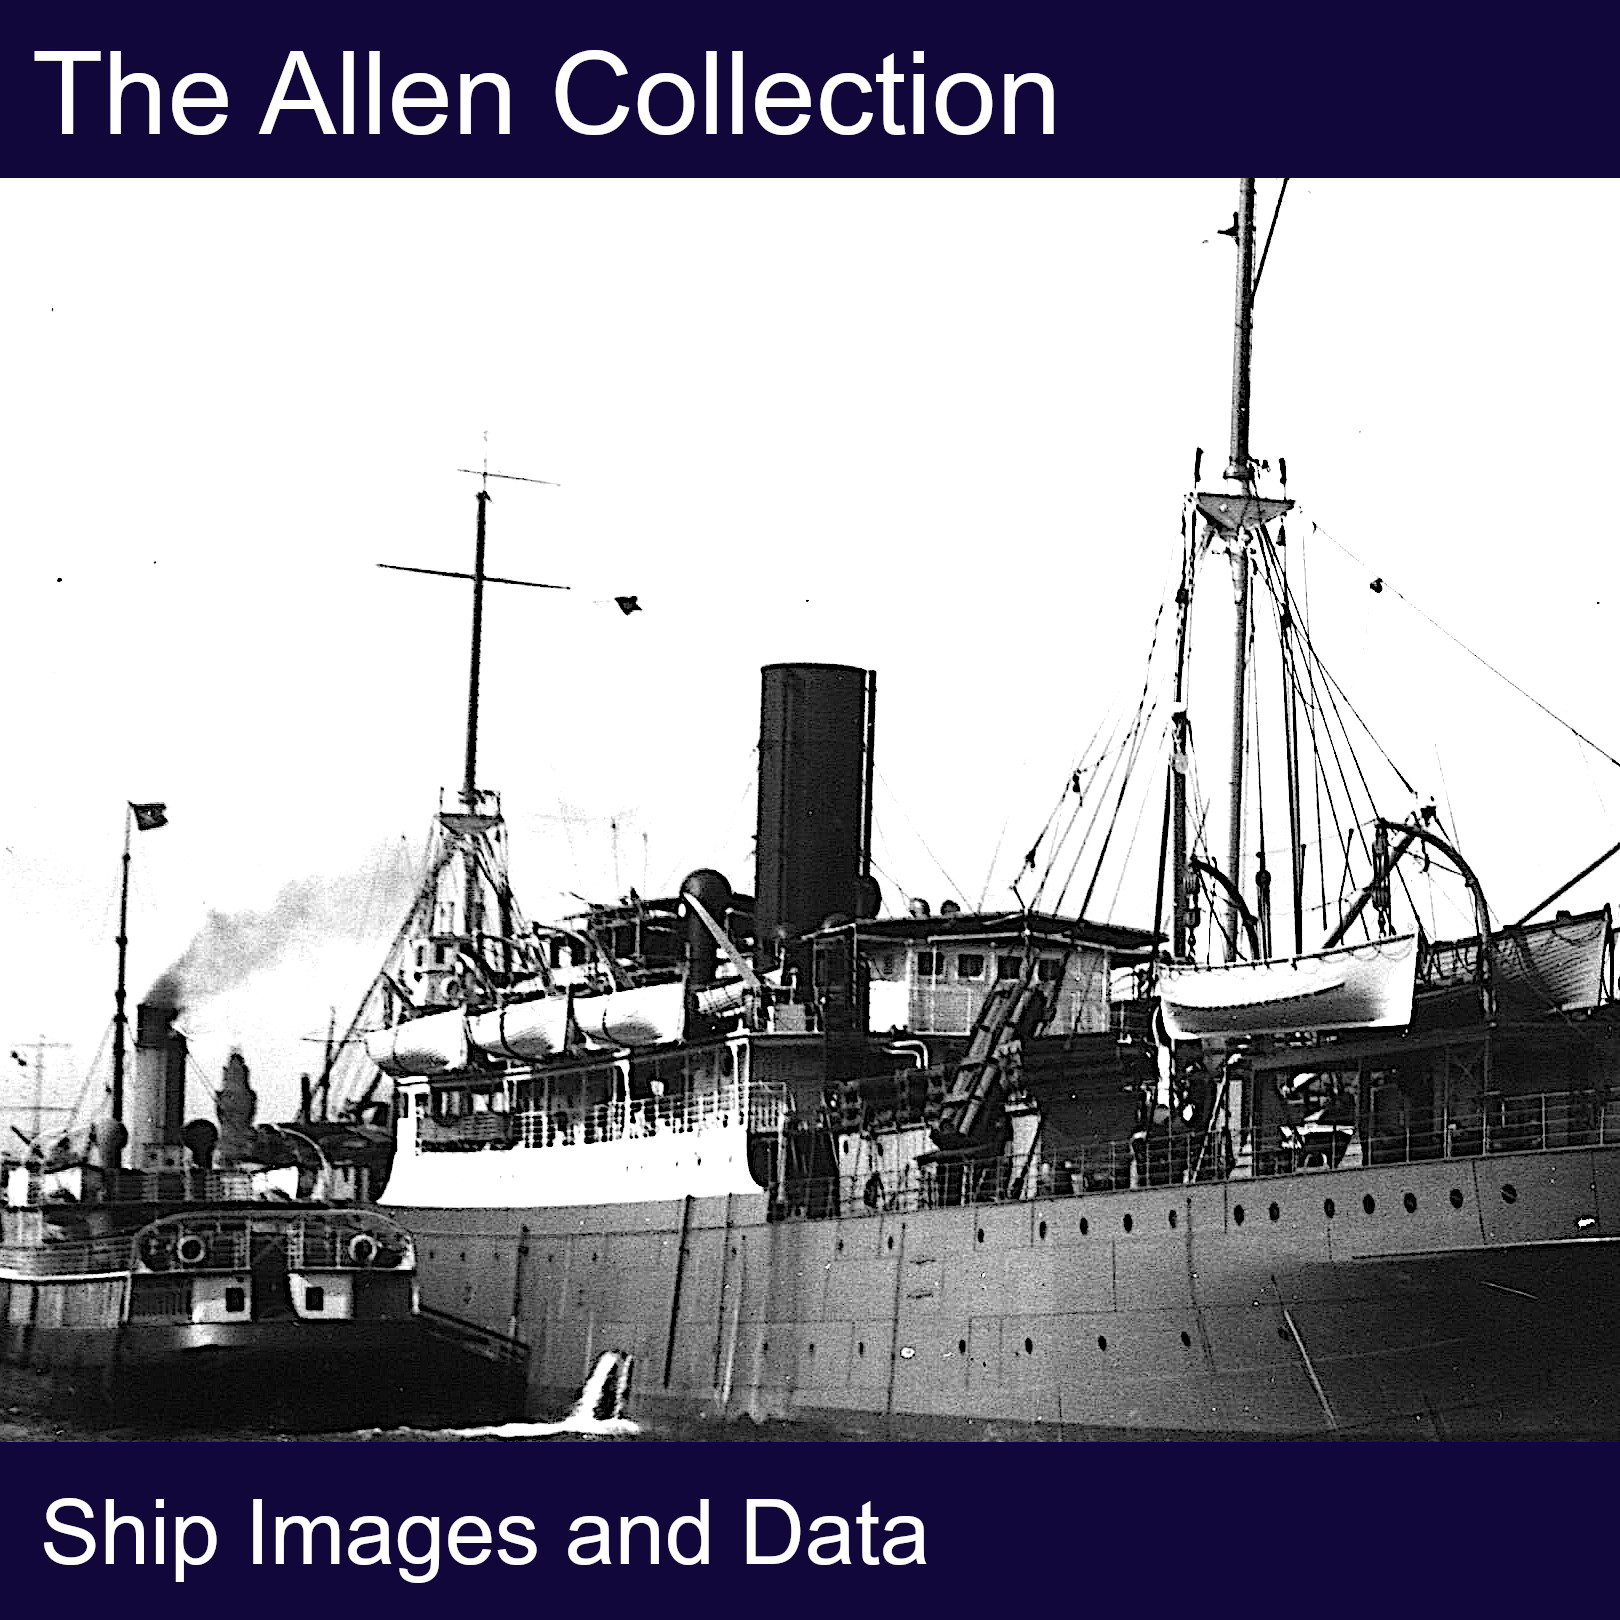 The Allen Collection